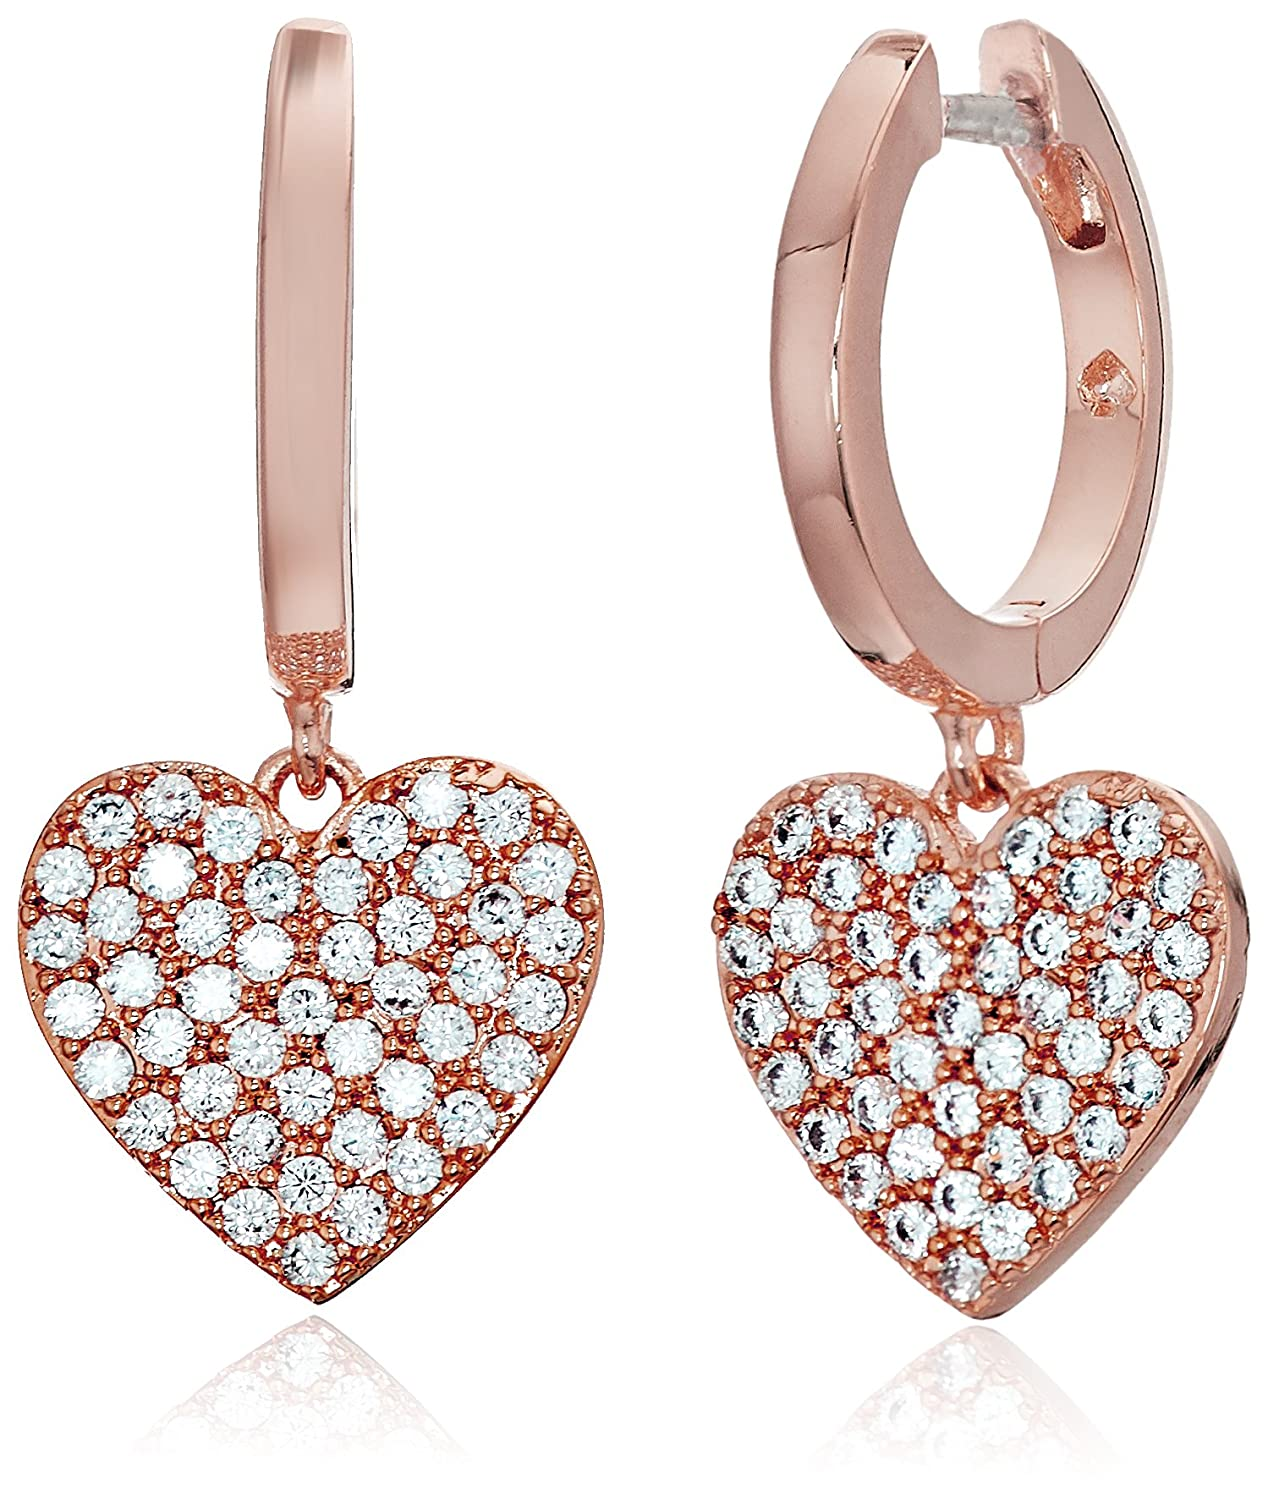 ad1035cacec5e Amazon.com: kate spade new york Pave Heart Rose Gold Drop Earrings ...